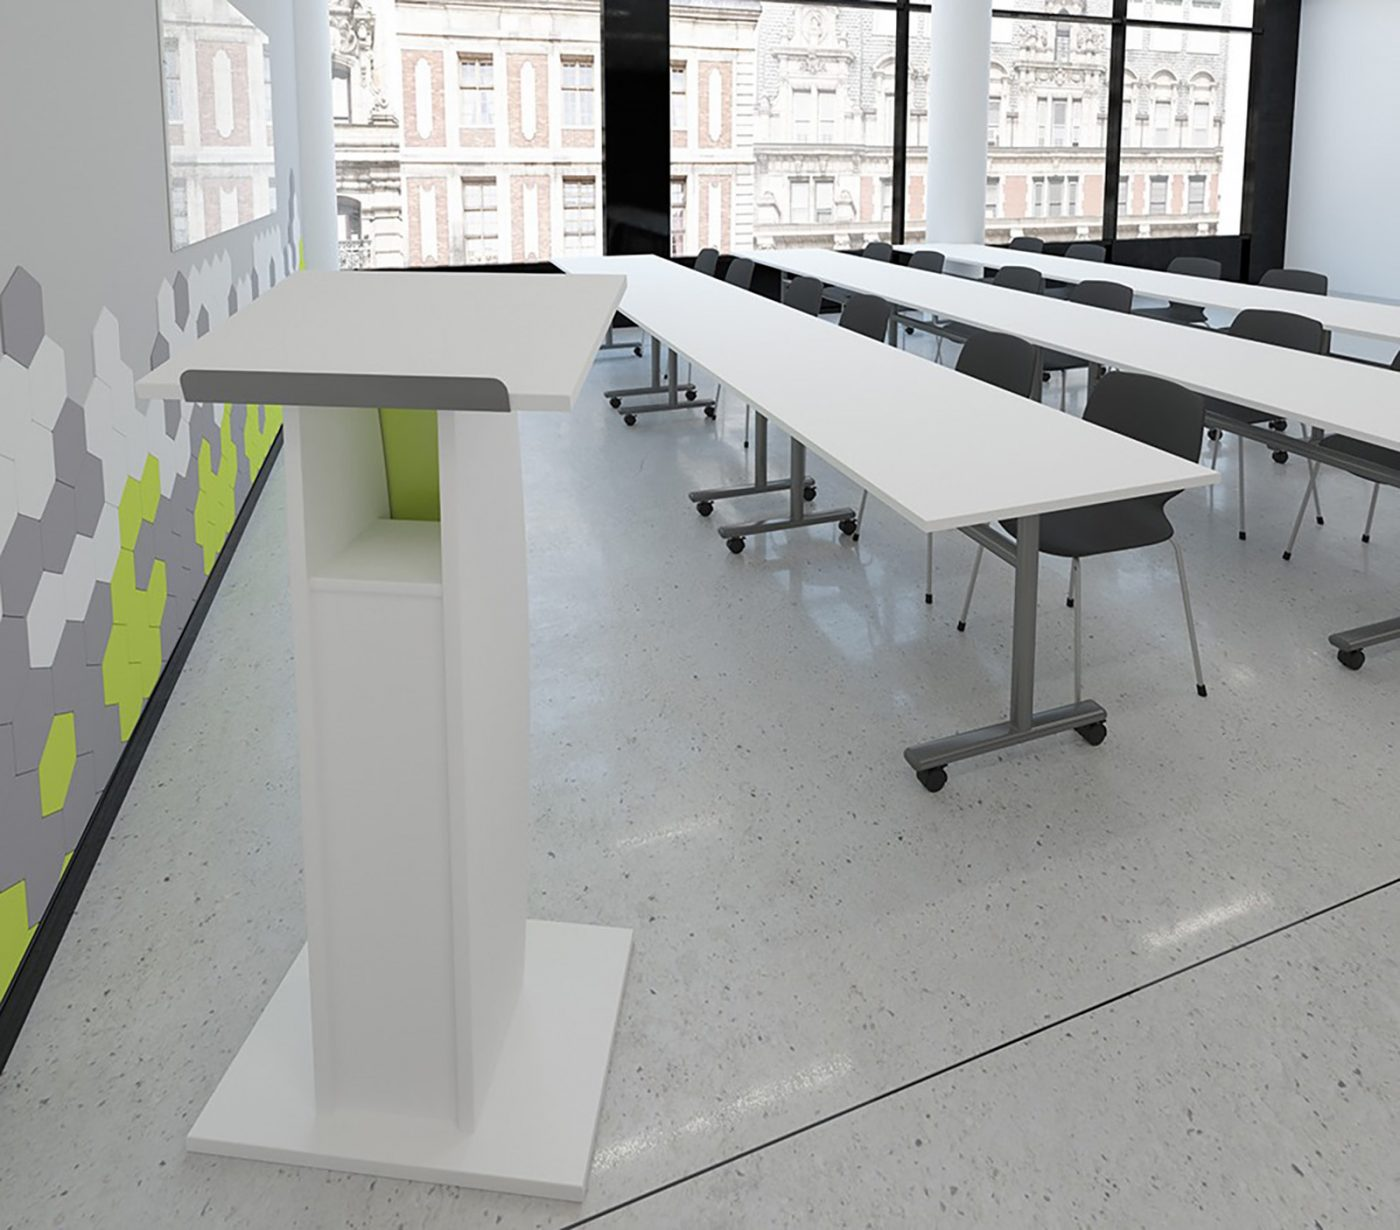 lectern, classroom furniture, university furniture